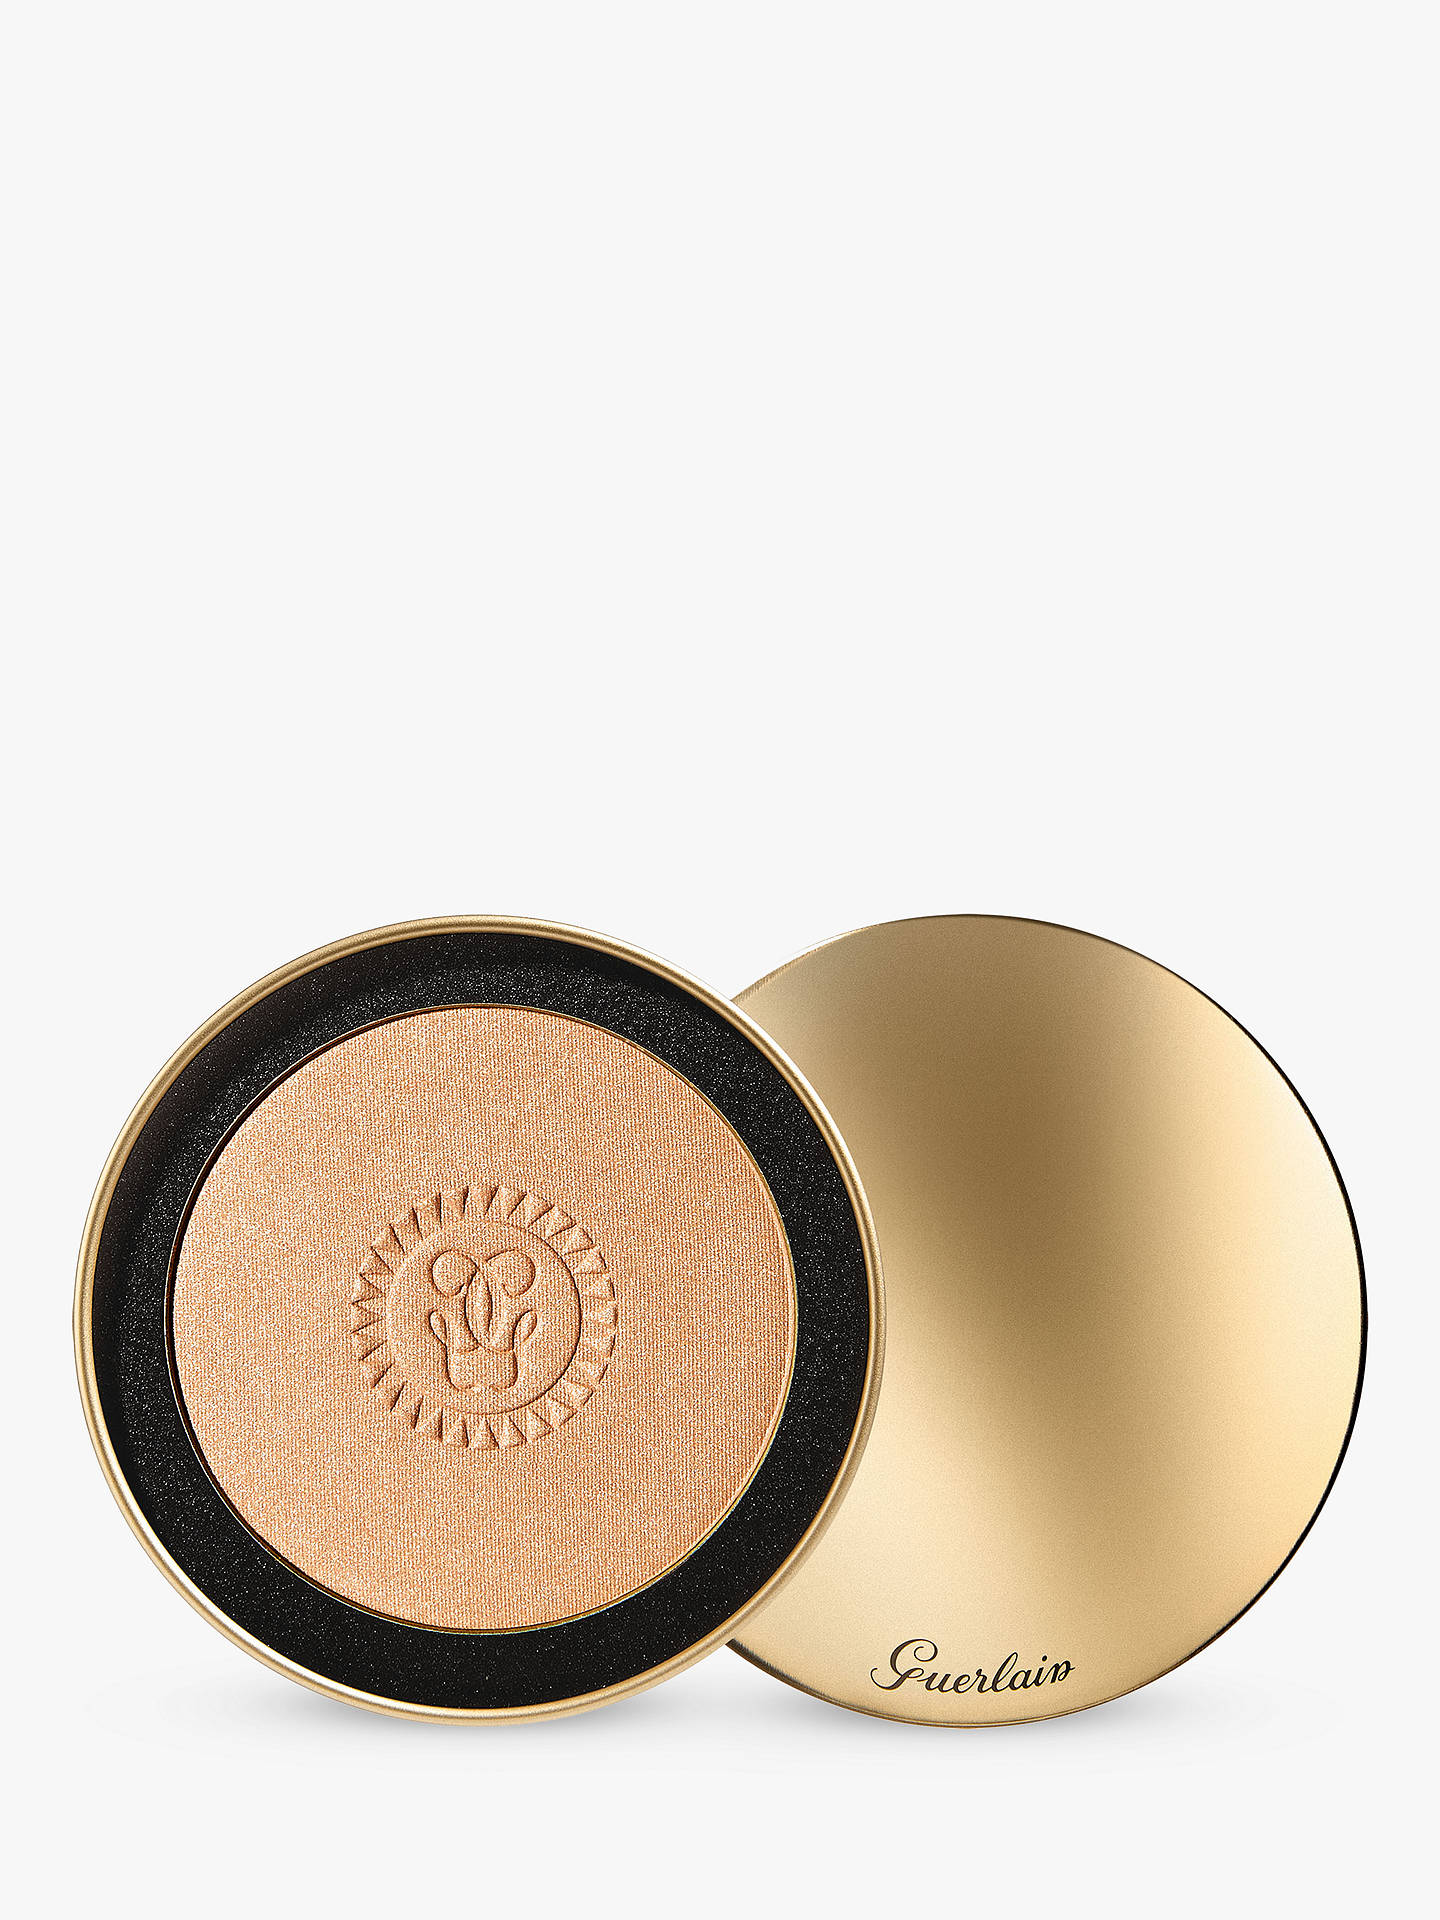 BuyGuerlain Terracotta Electric Light Copper Bronzing Powder, 10g Online at johnlewis.com